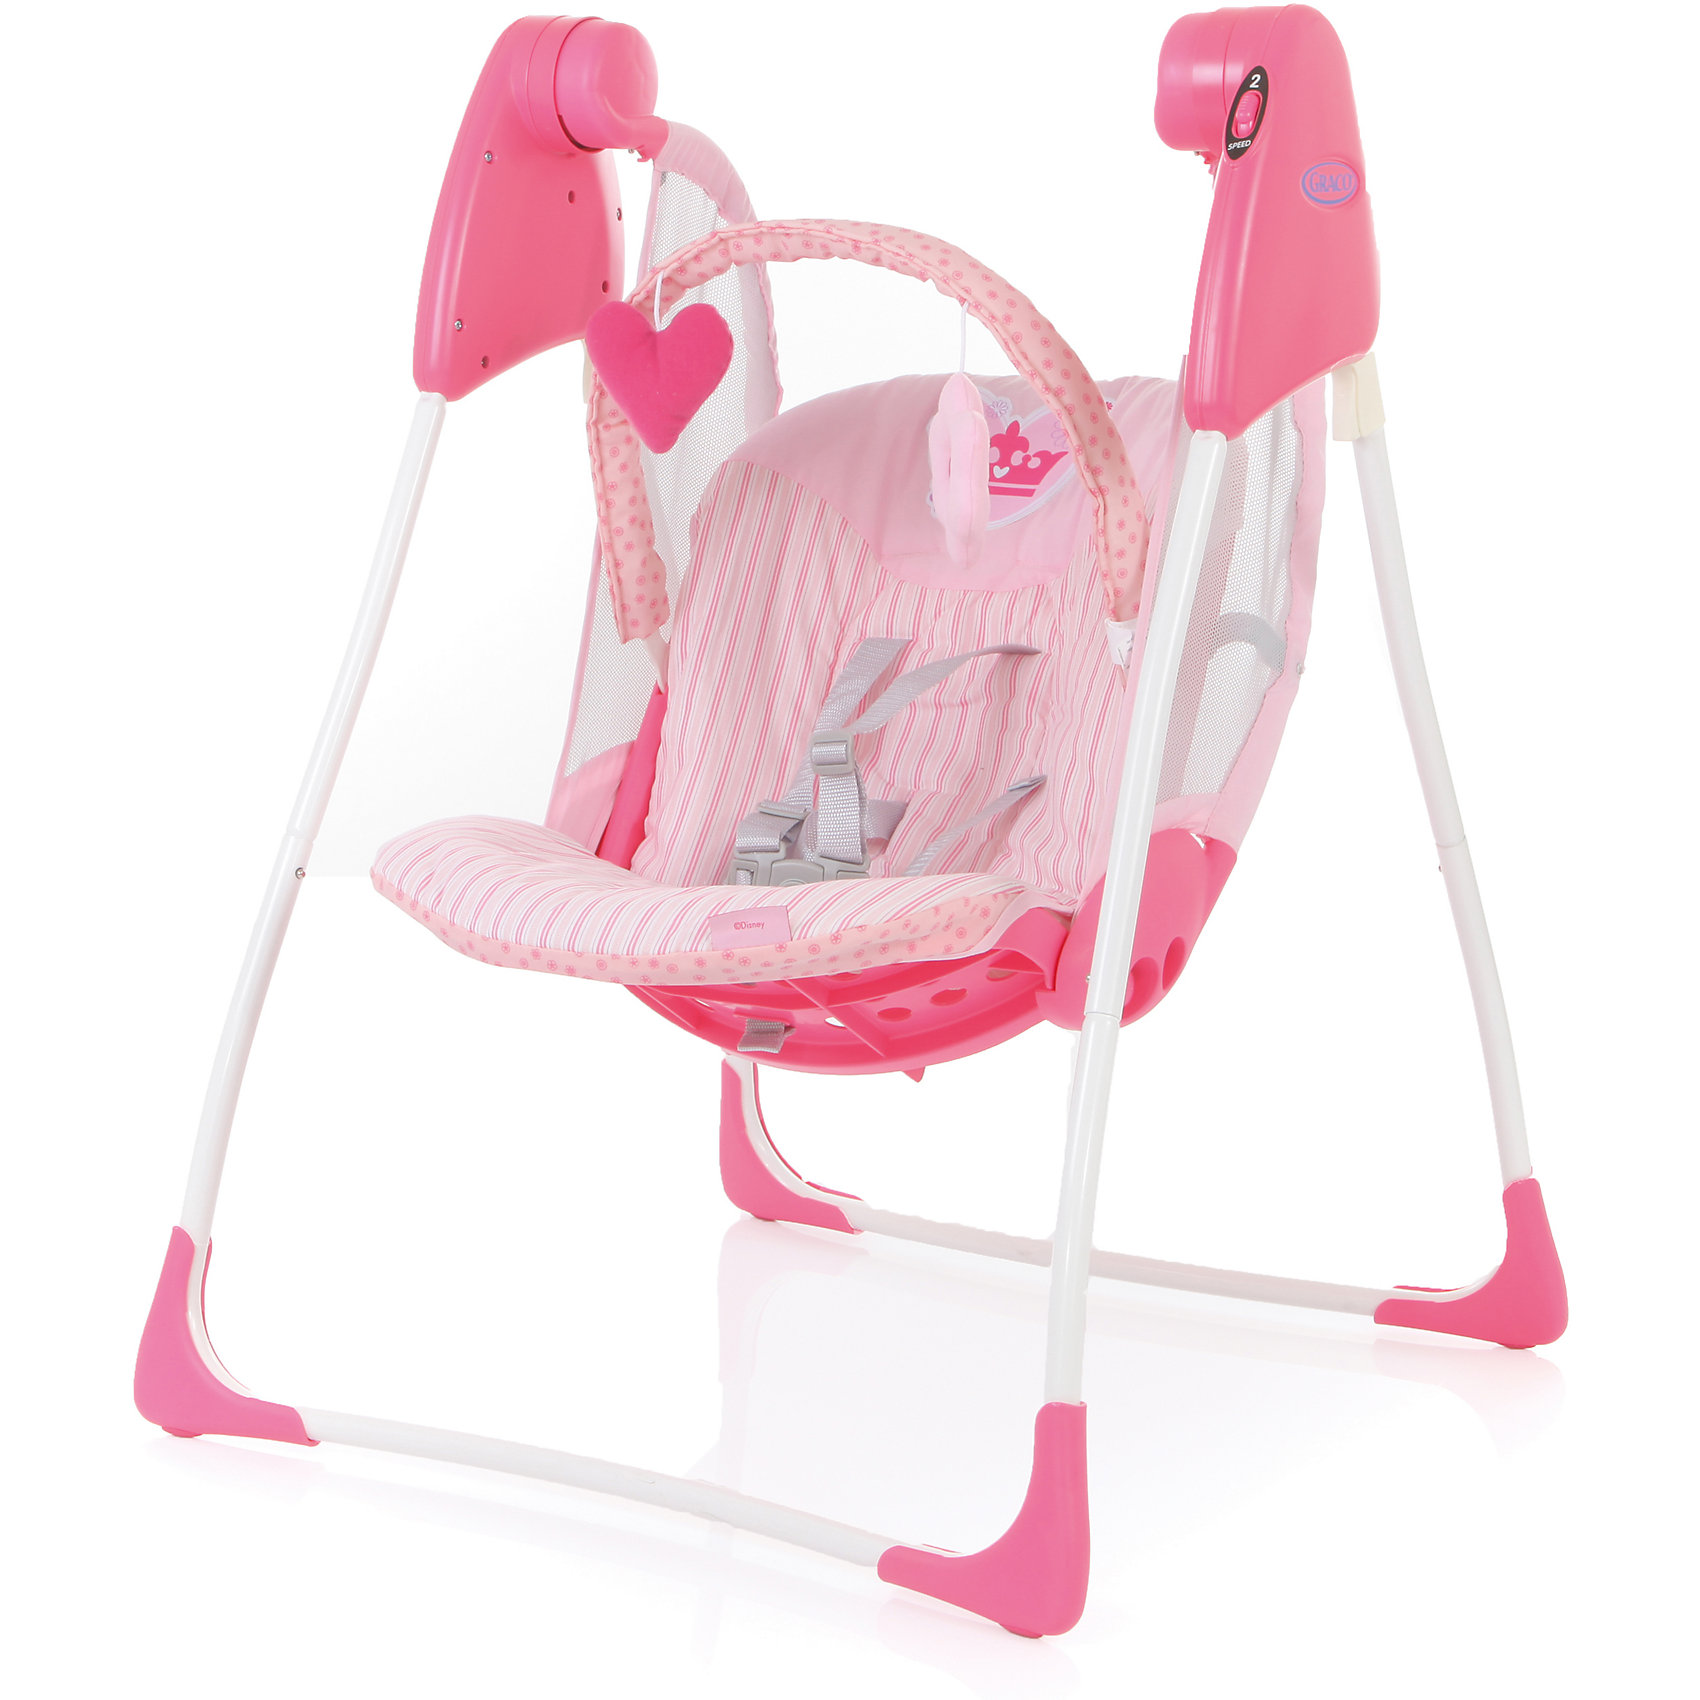 Graco Электрокачели Baby Delight, Princess Infant, Graco graco электрокачели sweet snuggle с адаптером graco